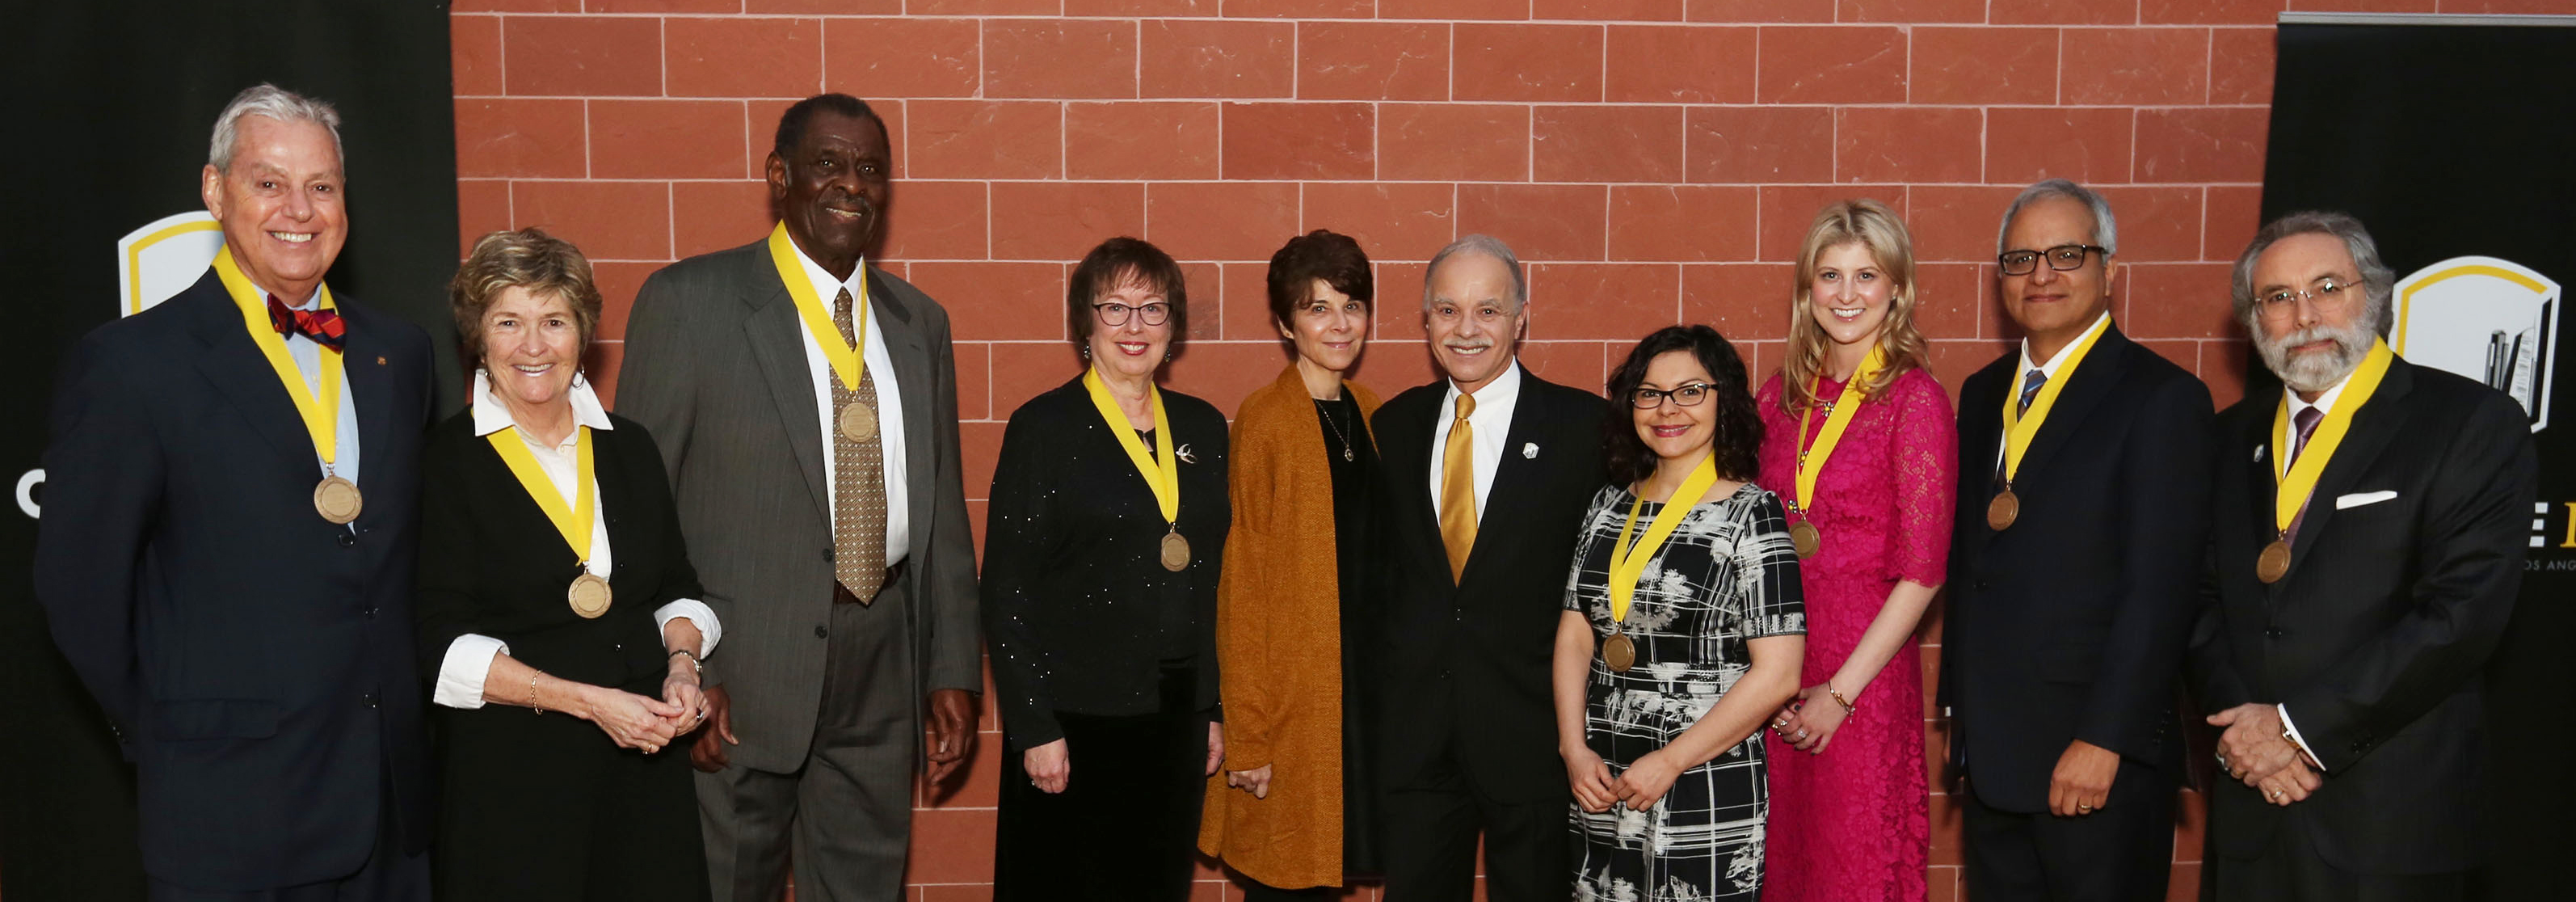 Recipients of the 2017 Alumni Awards